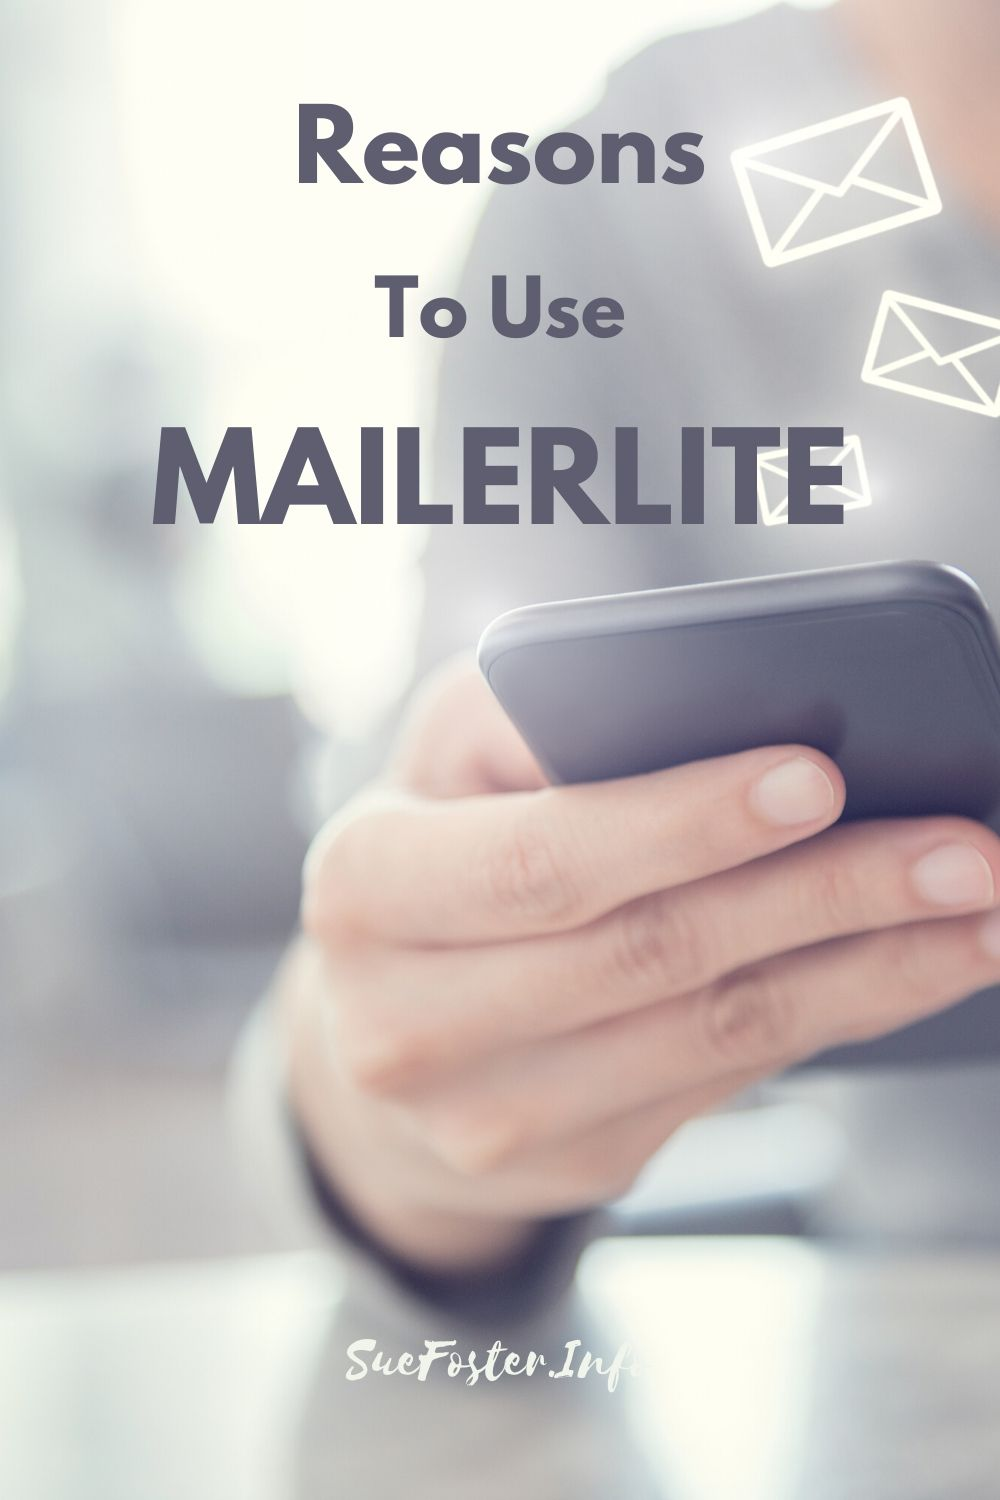 Reasons why you should use Mailerlite for email marketing.